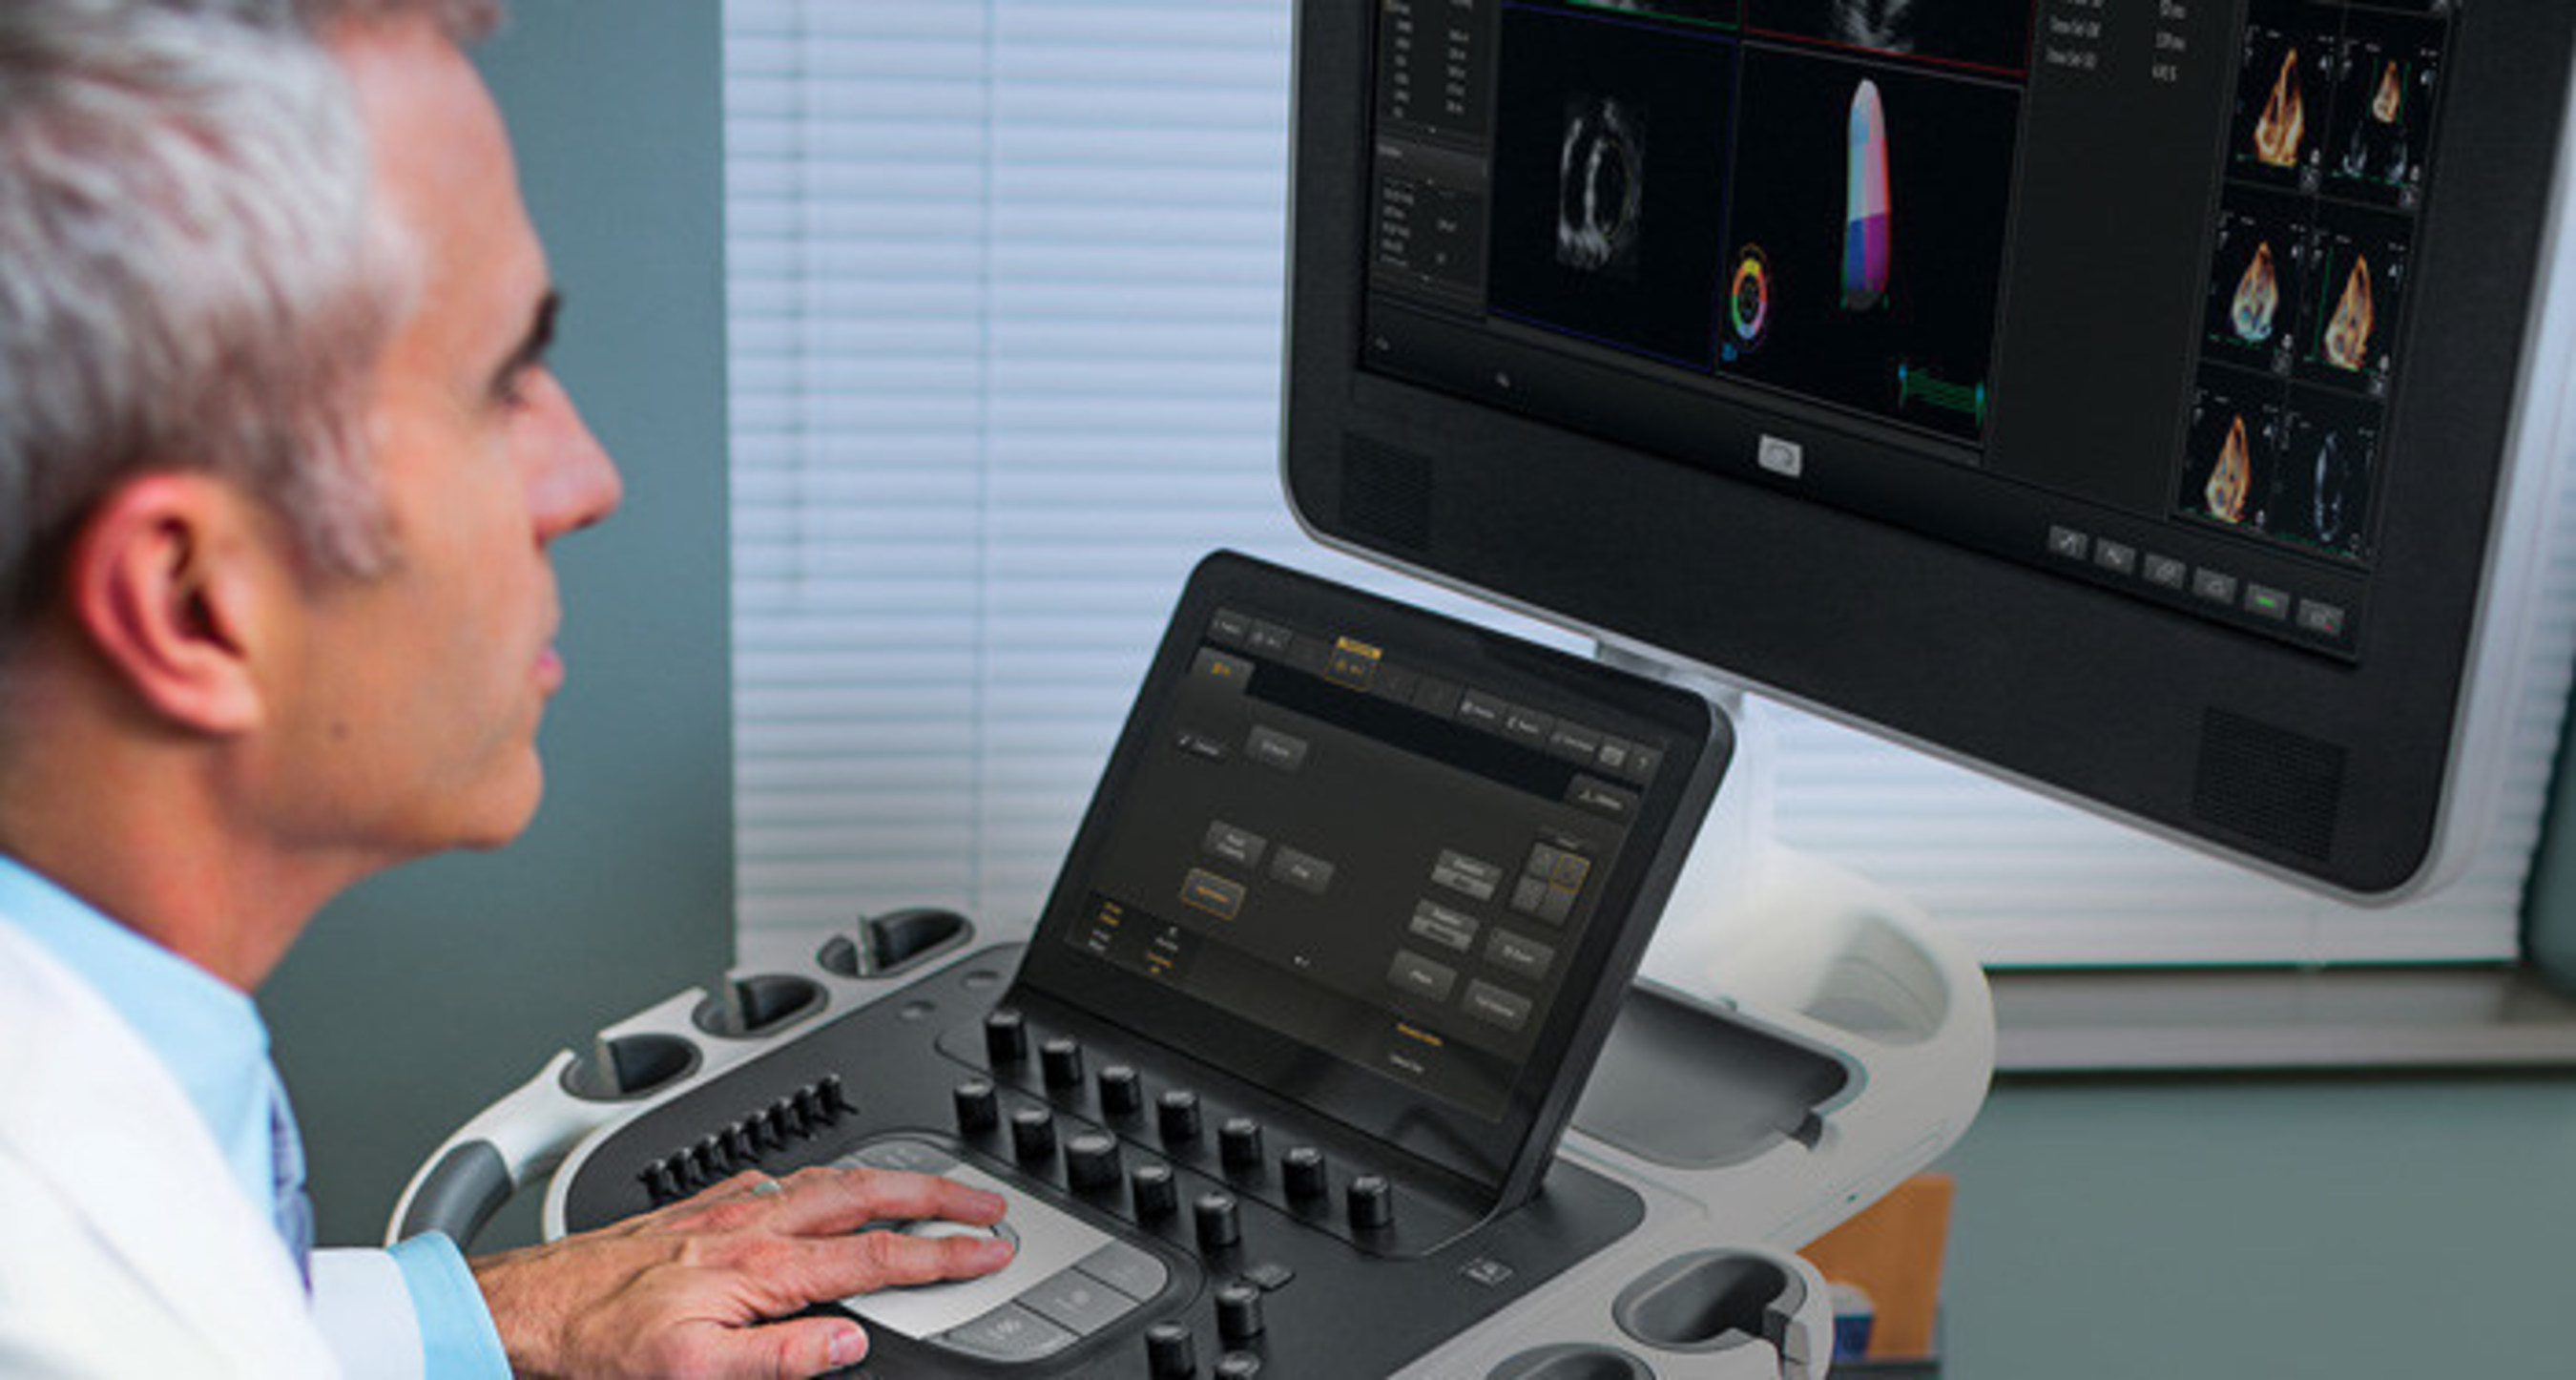 EPIQ 7 uses Anatomical Intelligence to provide clinicians with sophisticated tools to help address today's most demanding healthcare challenges.